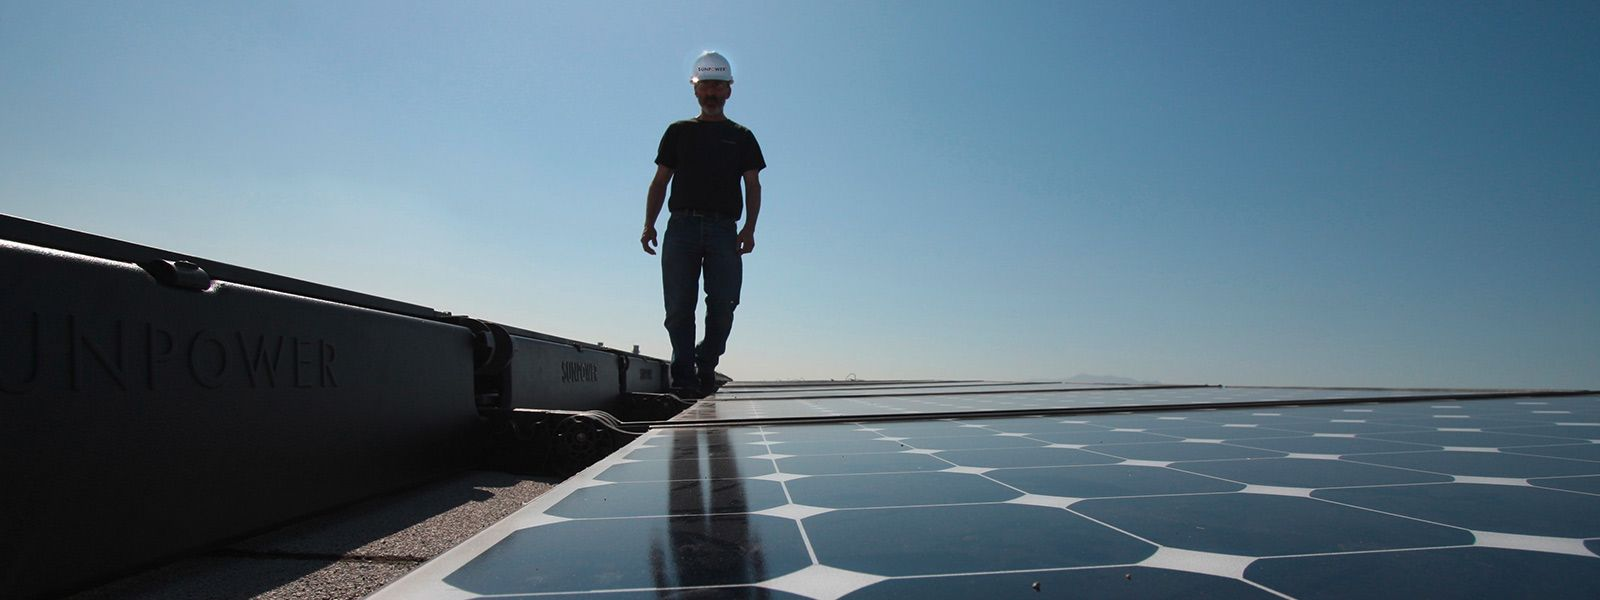 solar installer on rooftop installation